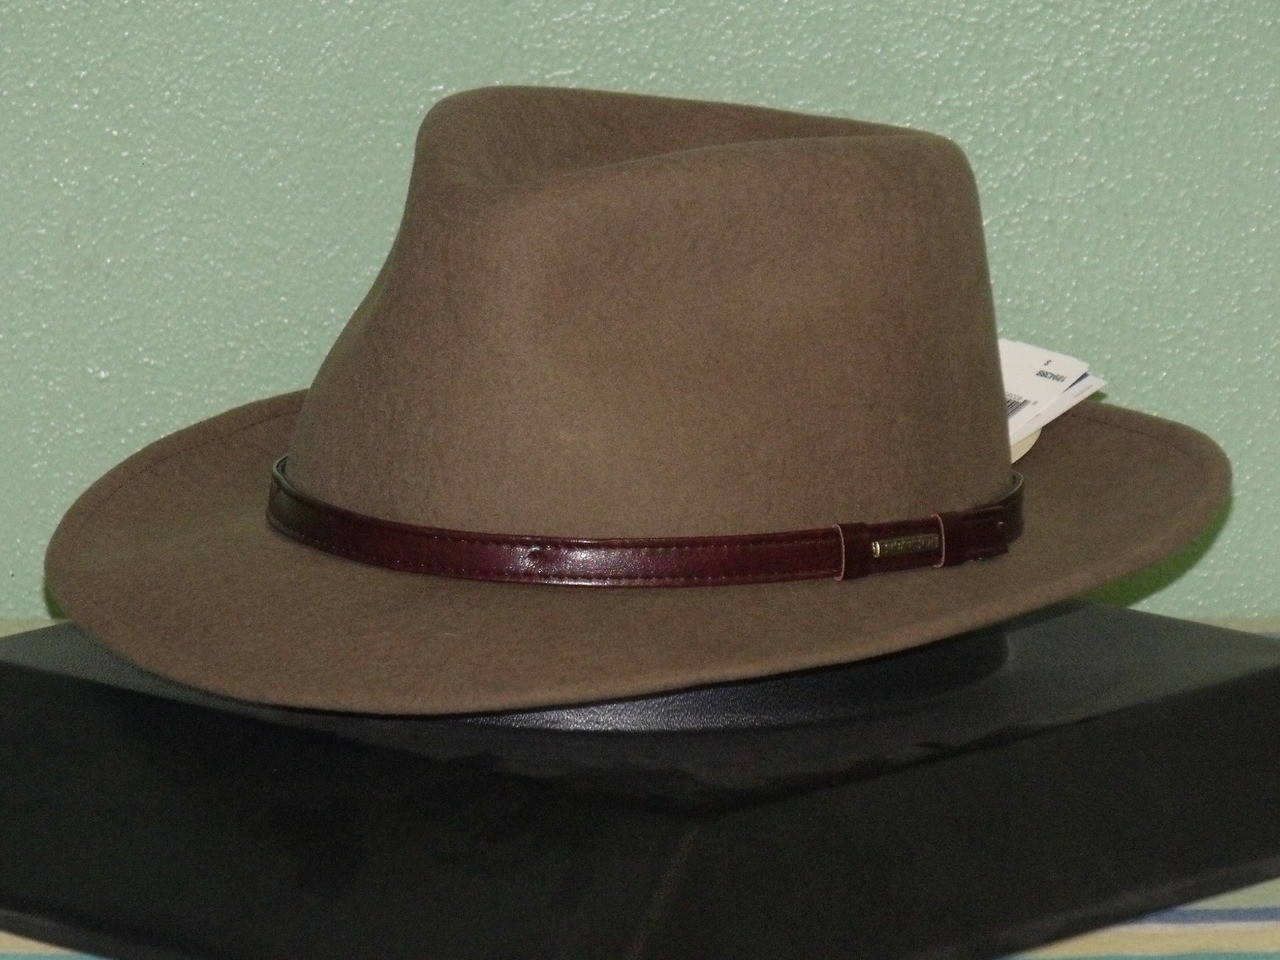 Stetson Cruiser Crushable Wool Fedora Hat - One 2 mini Ranch 60362b6ffd45